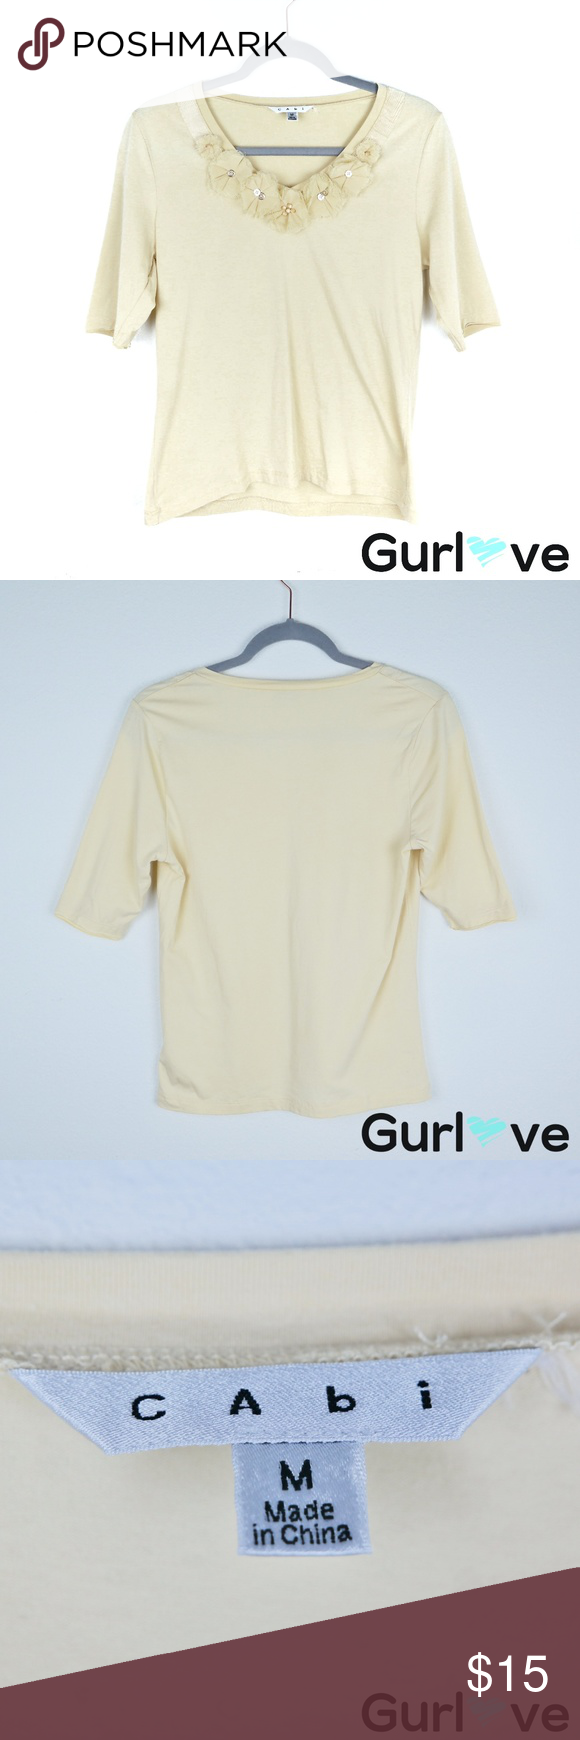 CAbi Yellow Neck Embellishment Blouse Size M Brand: CAbi  Size: M  Condition: Gently Used, It has a little stain shows in pics  Approximate Measurements (taken flat):  Sleeve length from shoulder seam-13